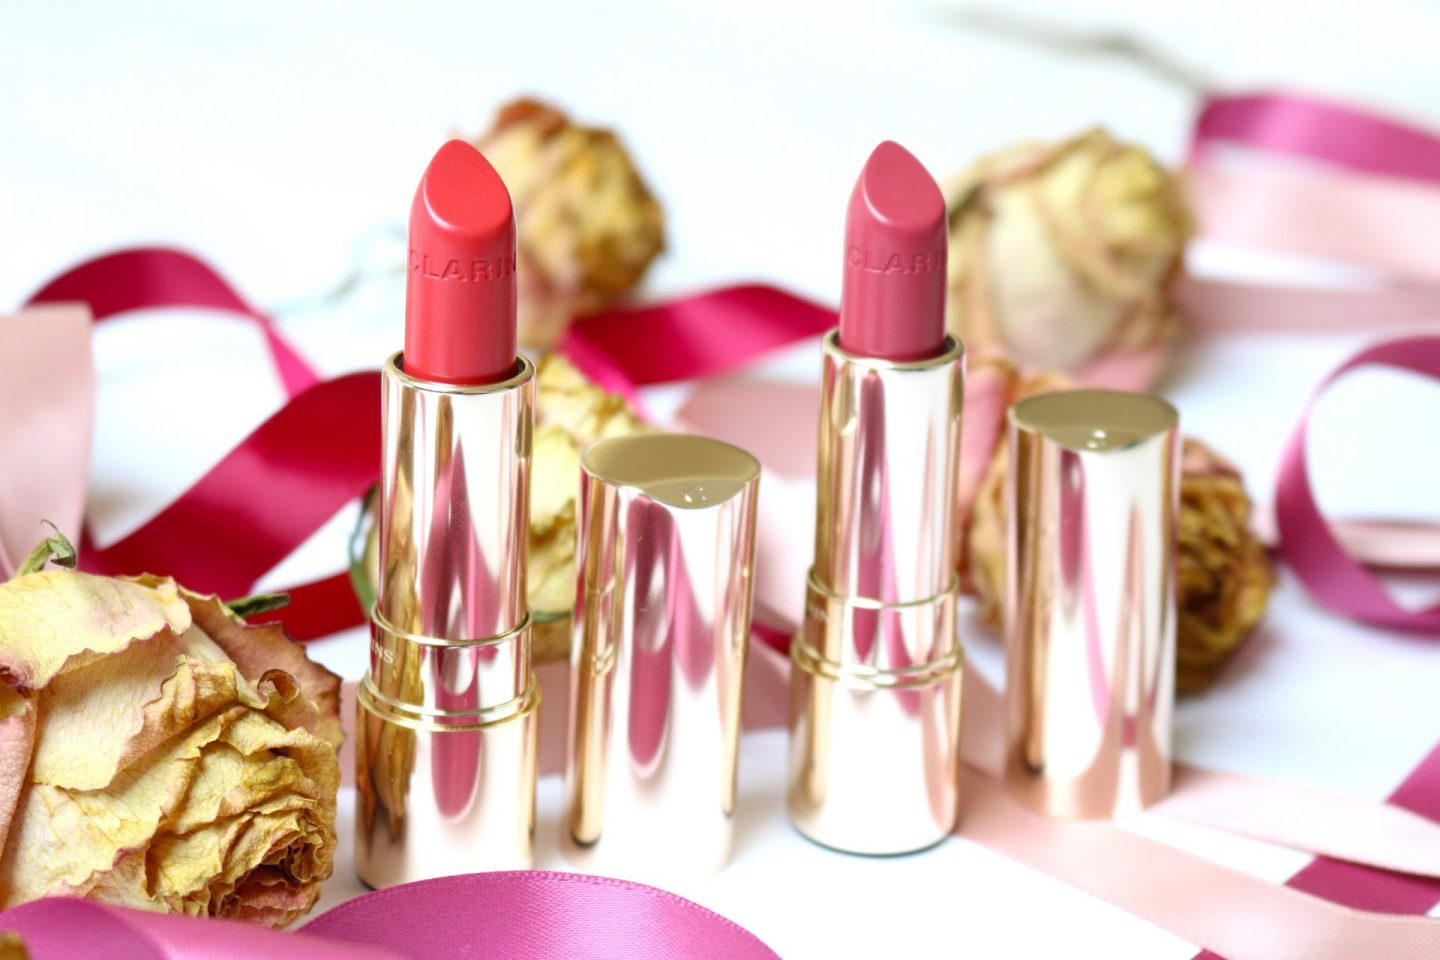 Clarins Joli Rouge Lipstick has new colors! Guava and Litchi